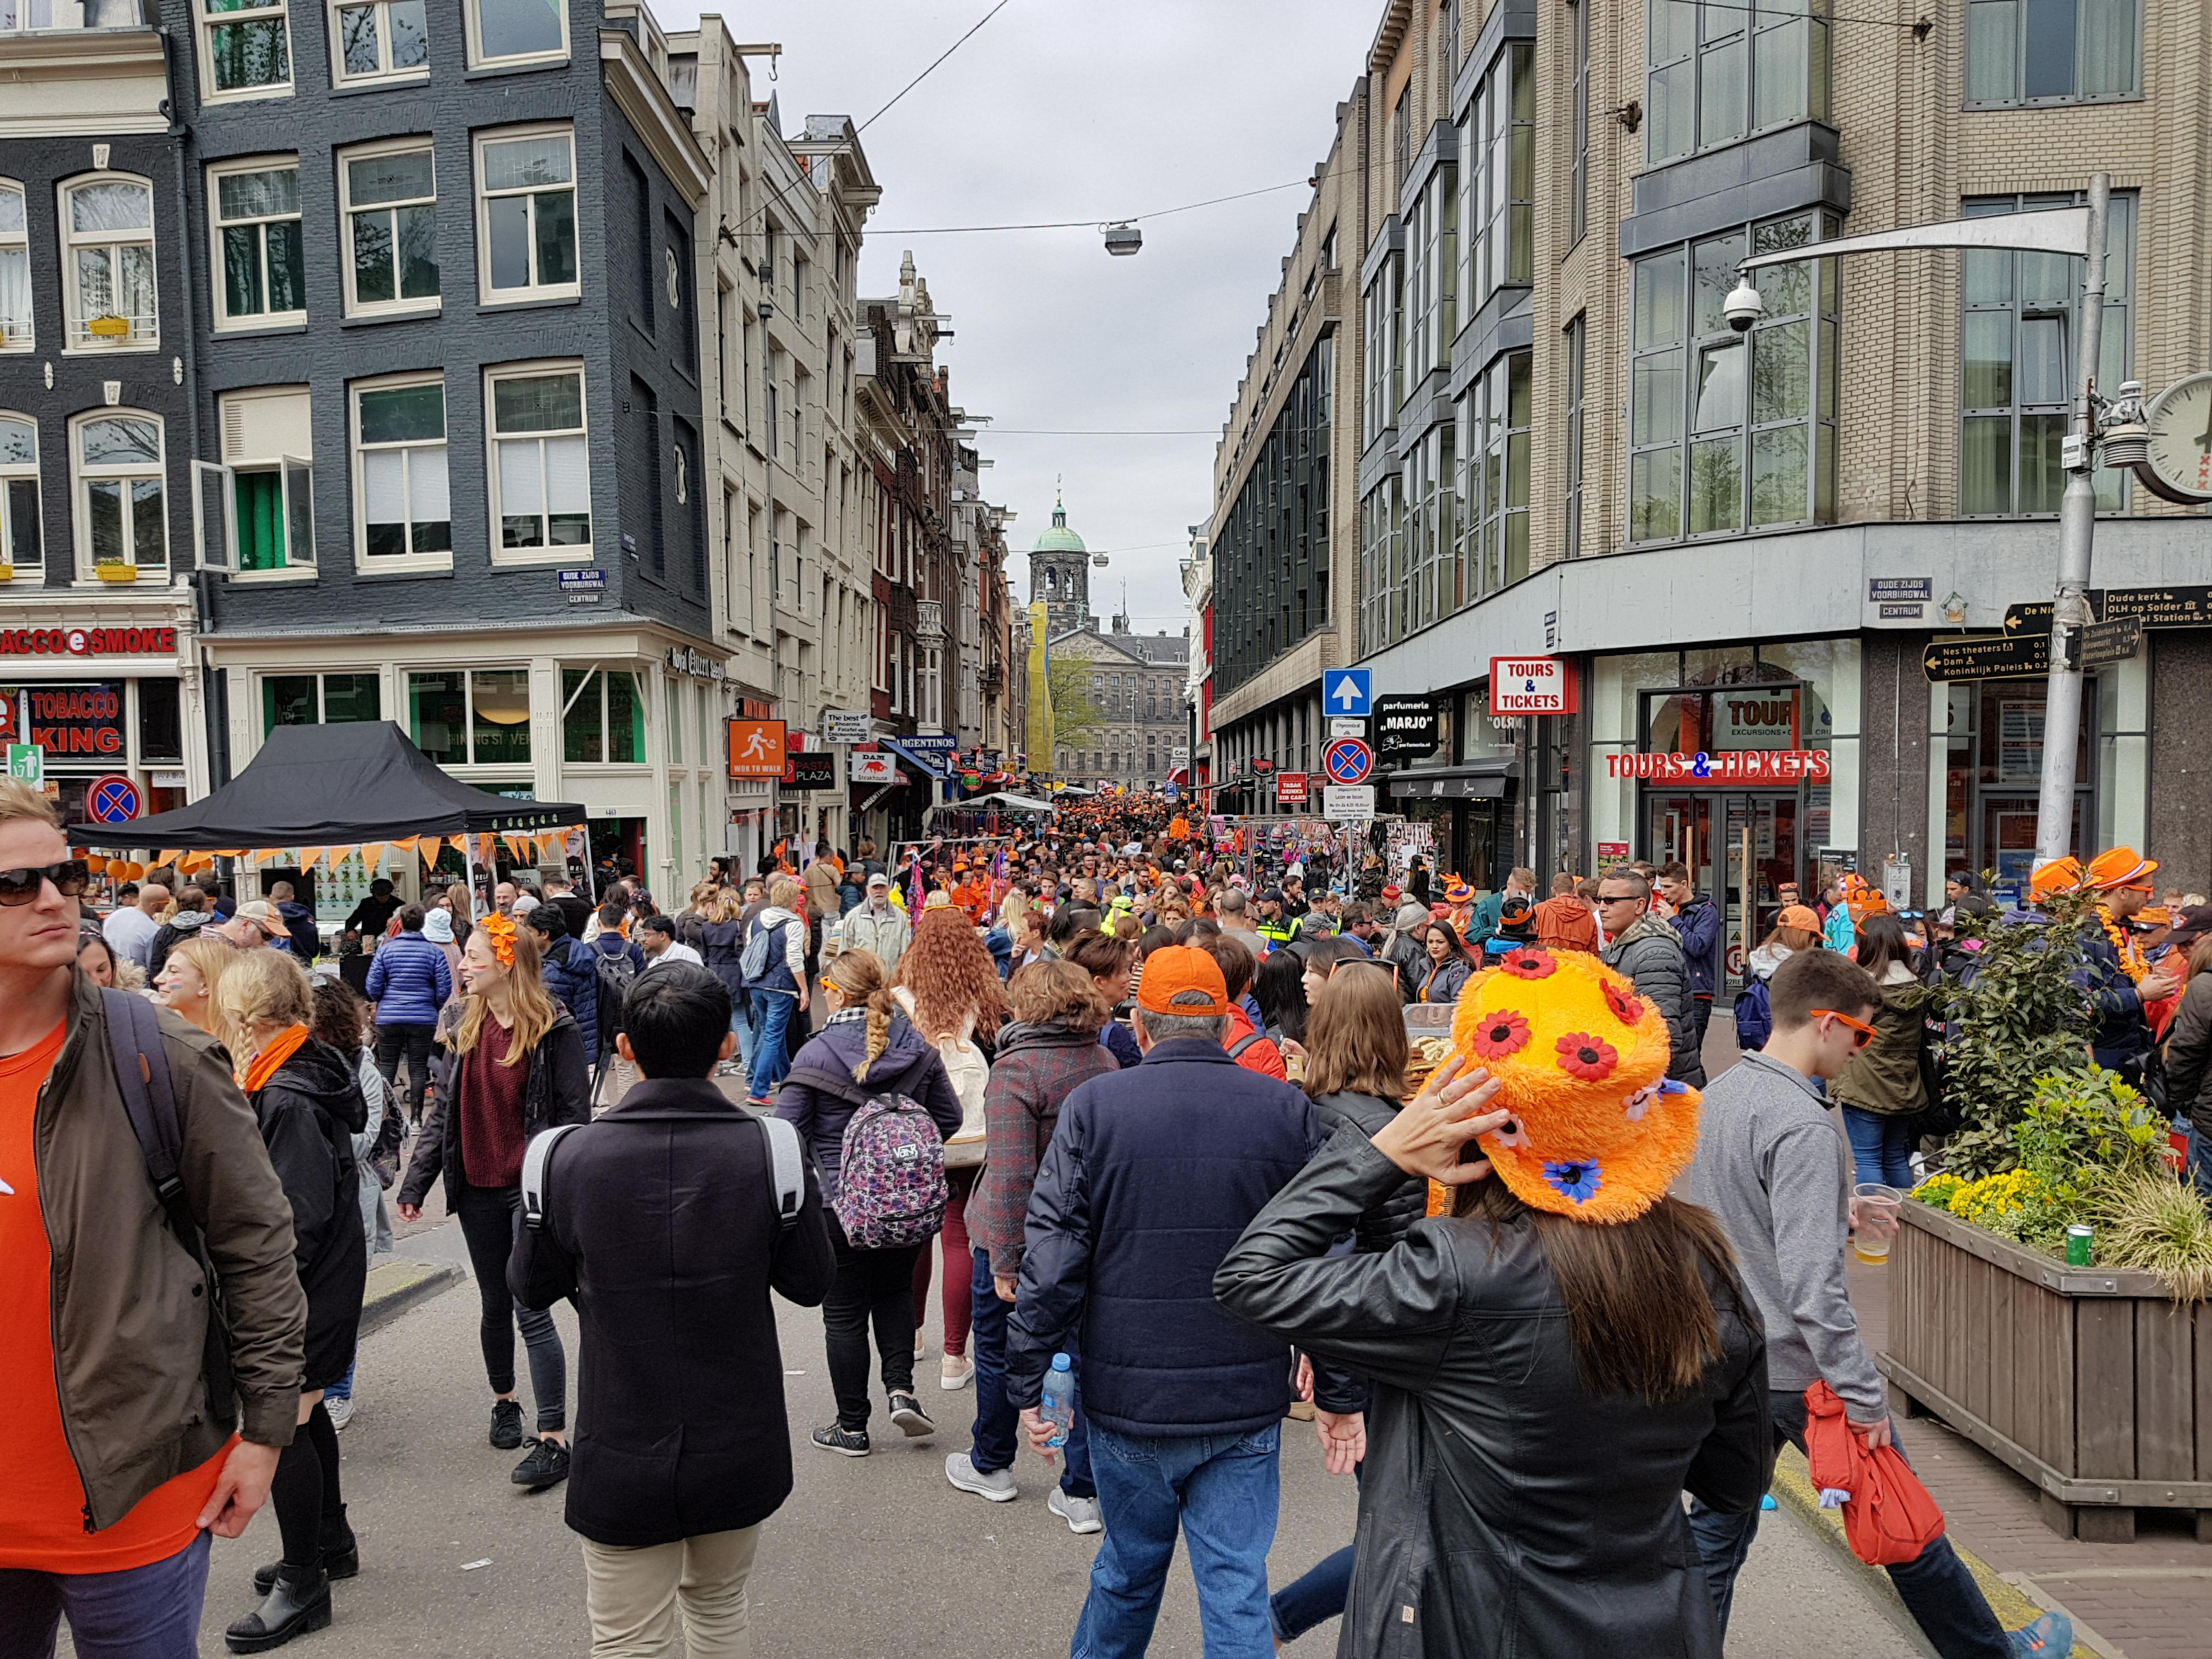 A crowded Street In Amsterdam on King's day